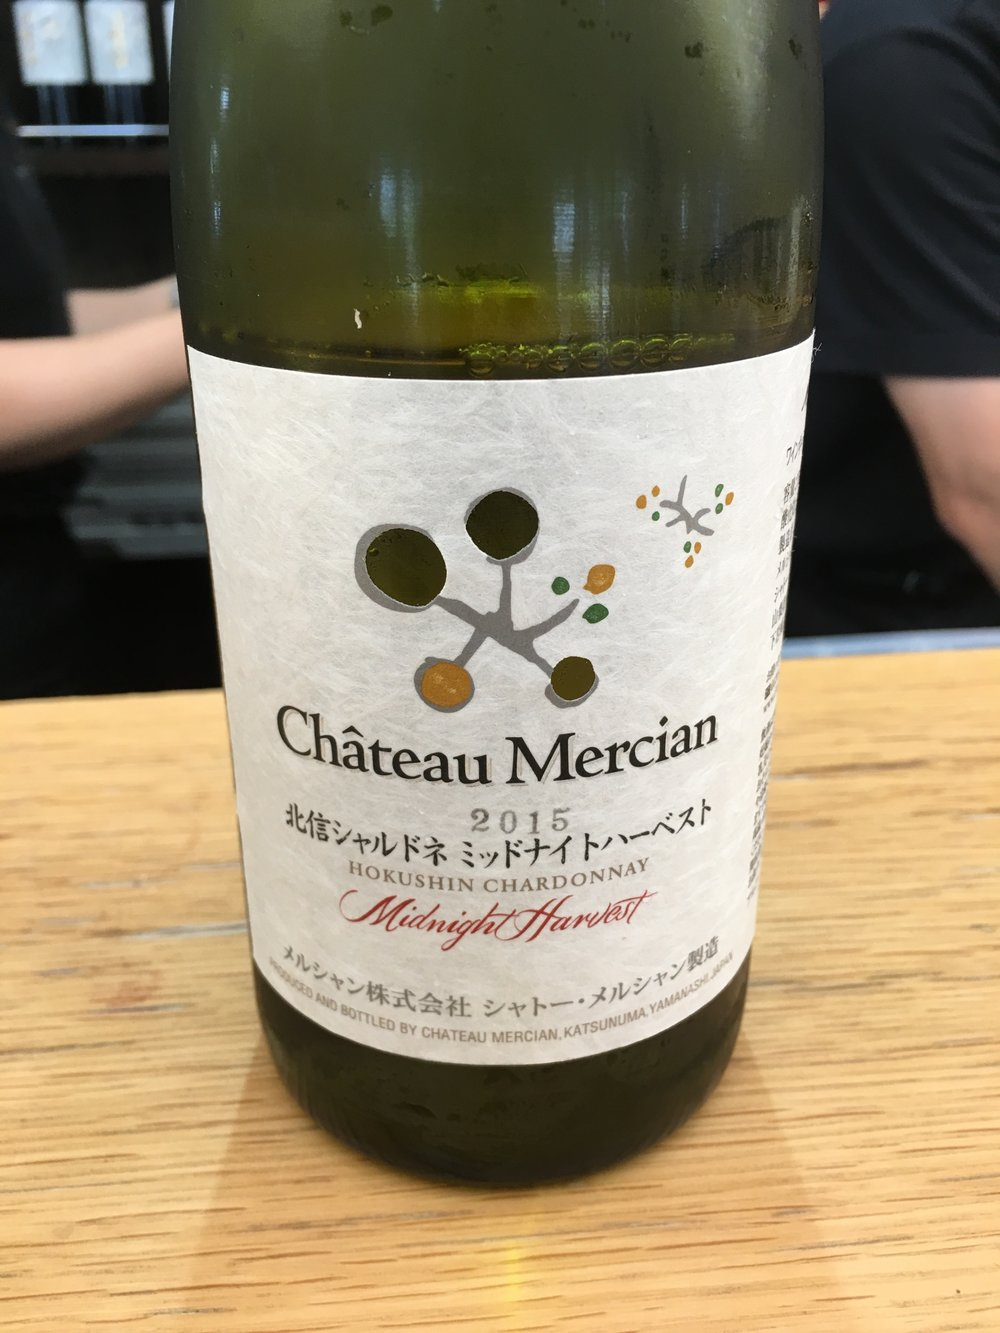 This Montrachet-style chardonnay is complex and delicious.